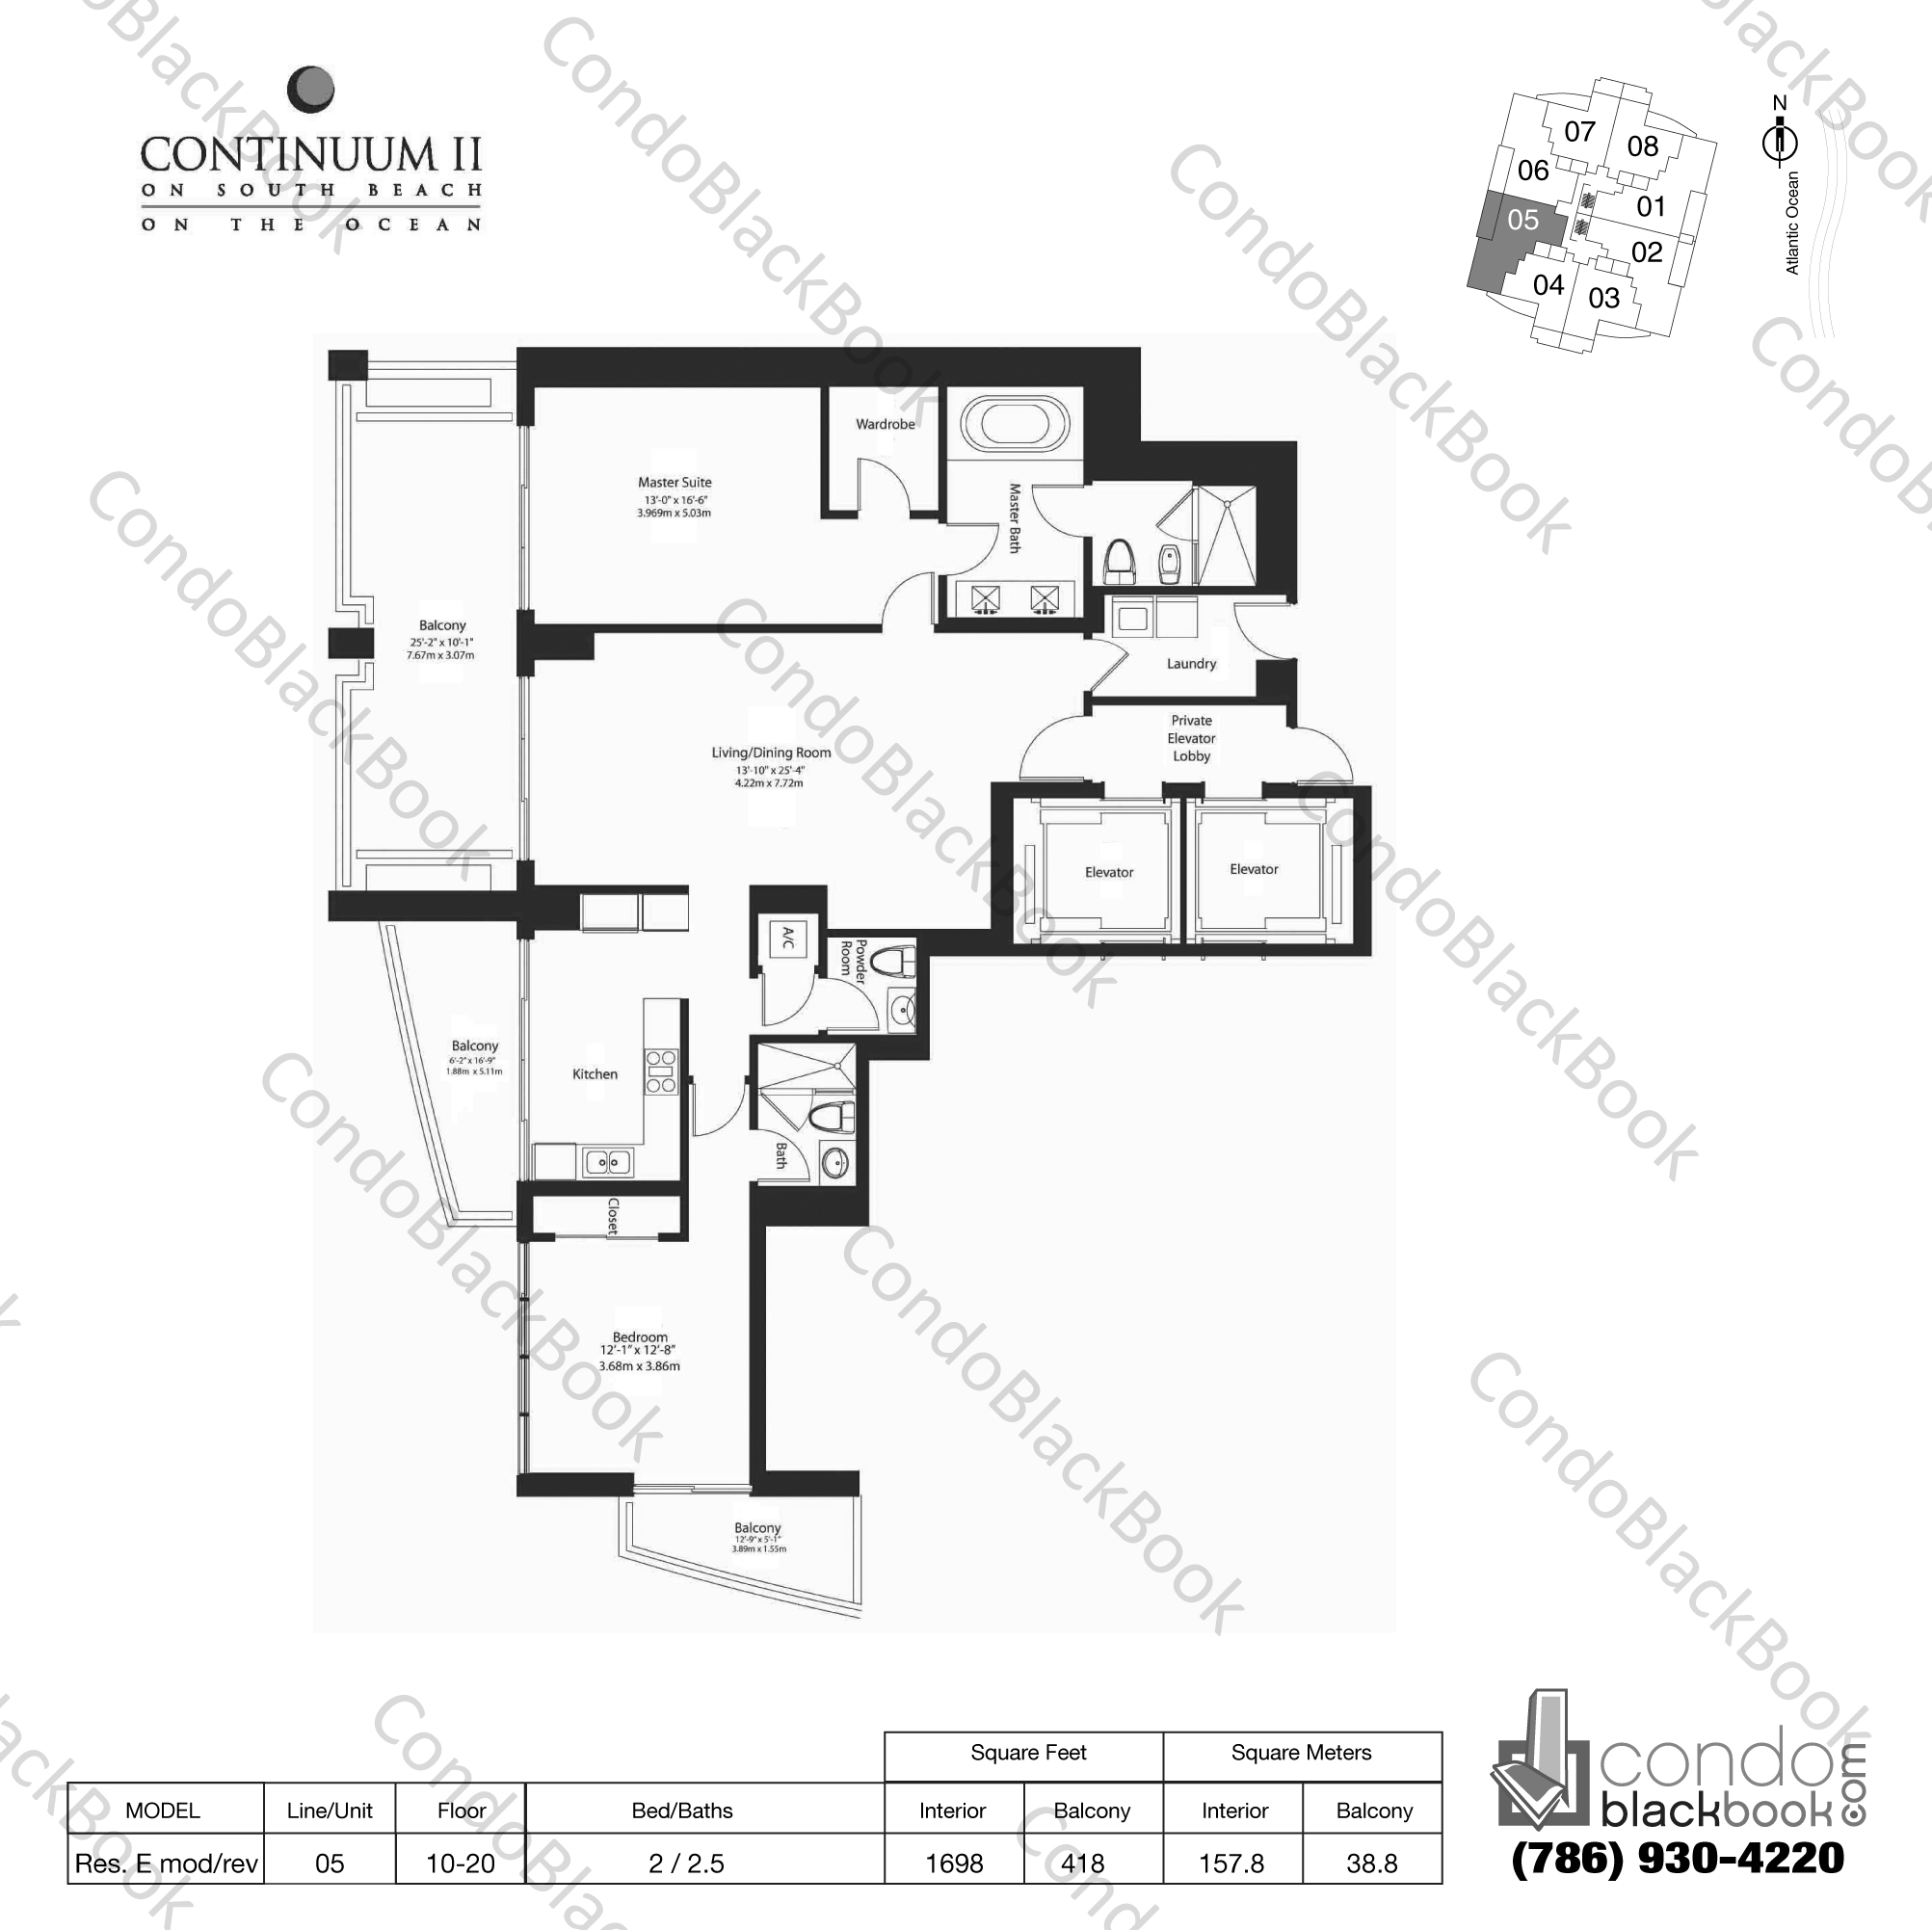 Floor plan for Continuum II North South Beach Miami Beach, model Res. E mod/rev, line 05, 2 / 2.5 bedrooms, 1698 sq ft